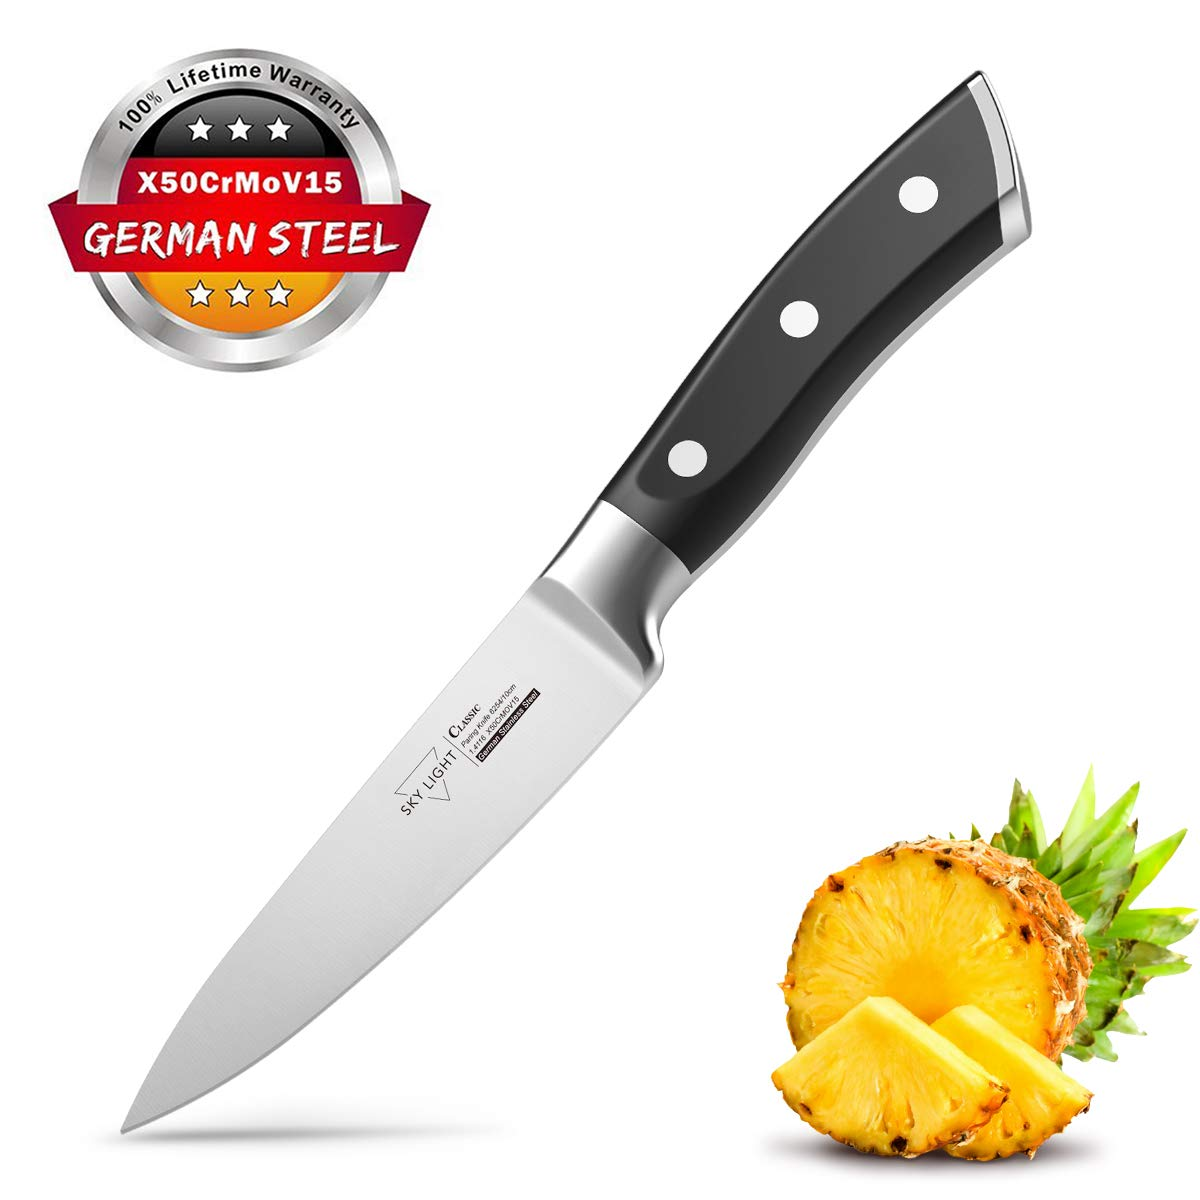 Paring Knife Fruit Knife Peeling Knife 4 Inch German HC Stainless Steel Small Sharp Knife with Non Slip Ergonomic Handle for Kitchen Cutting by SKY LIGHT